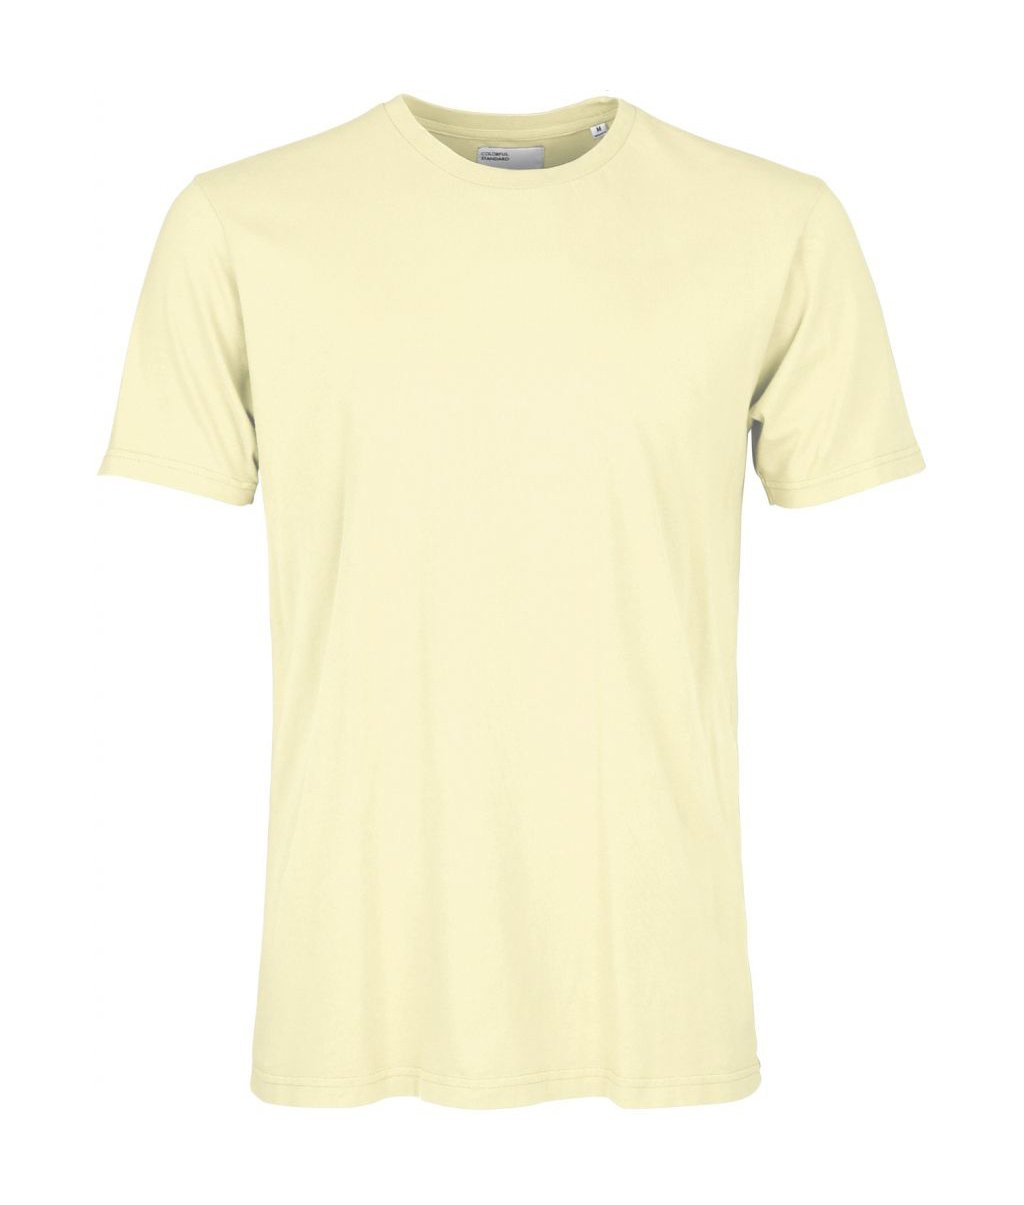 Colorful Standard COLORFUL STANDARD classic organic cotton tee shirt round neck soft yellow (unisex)